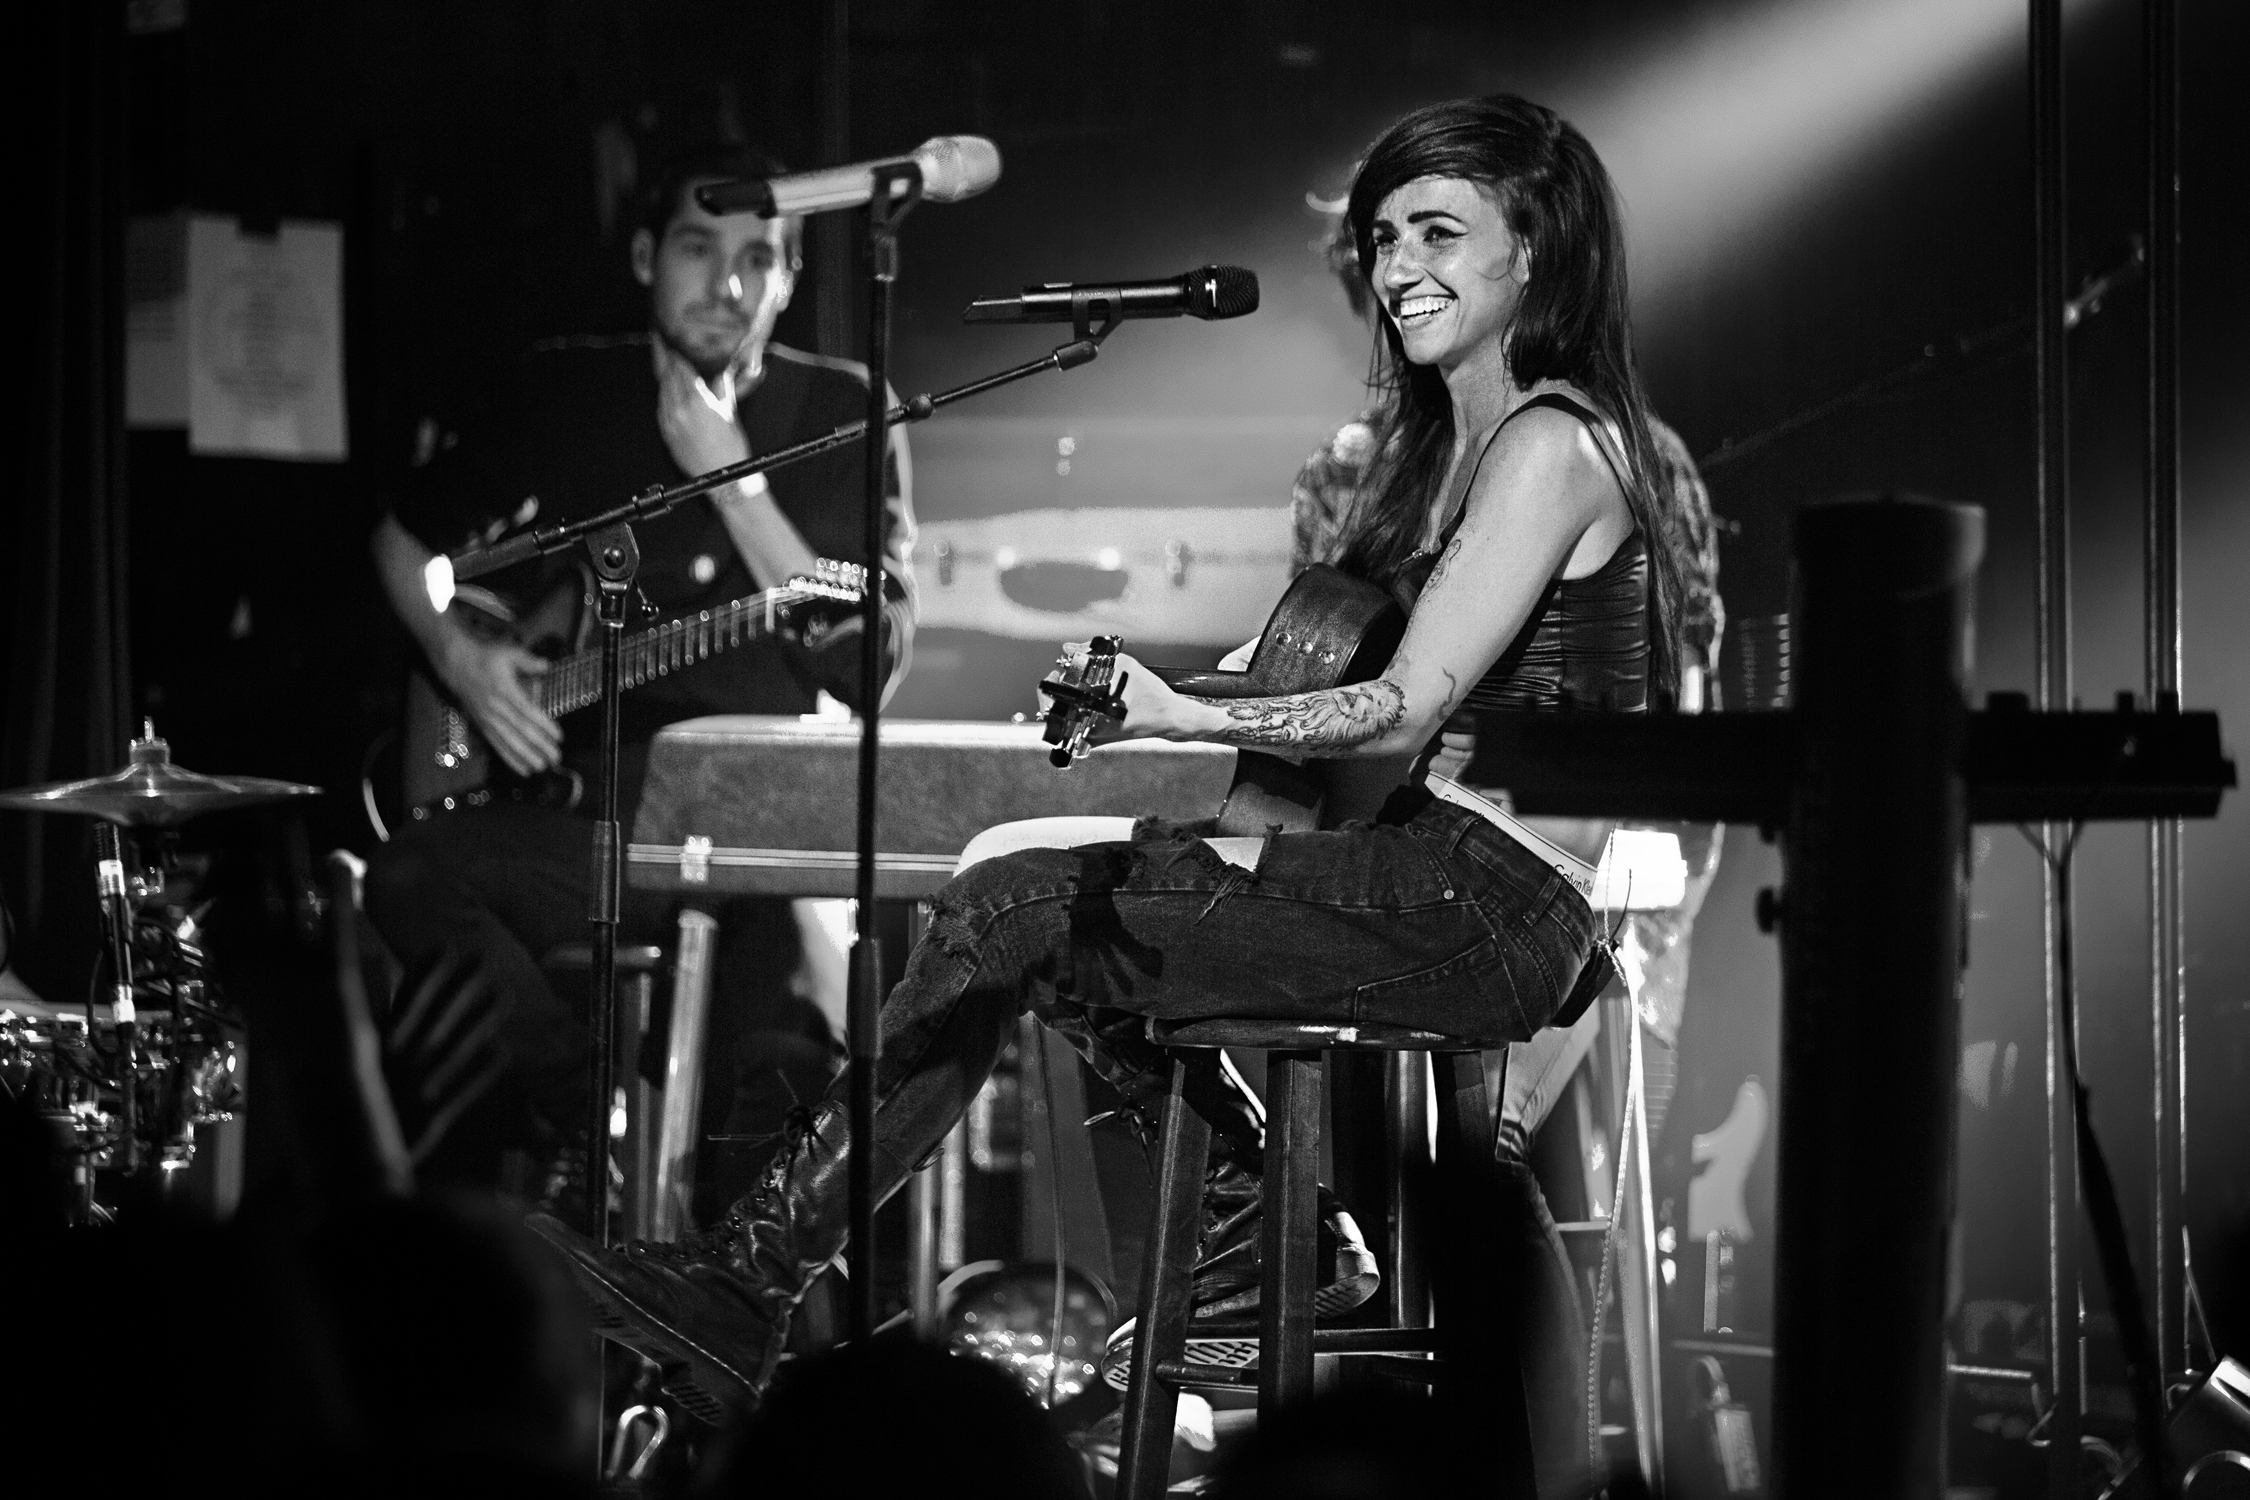 lauren nakao winn, photography, concert photography, live photos, Lights, lightsy, lights live pass, valerie poxleitner, lights poxleitner, irving plaza